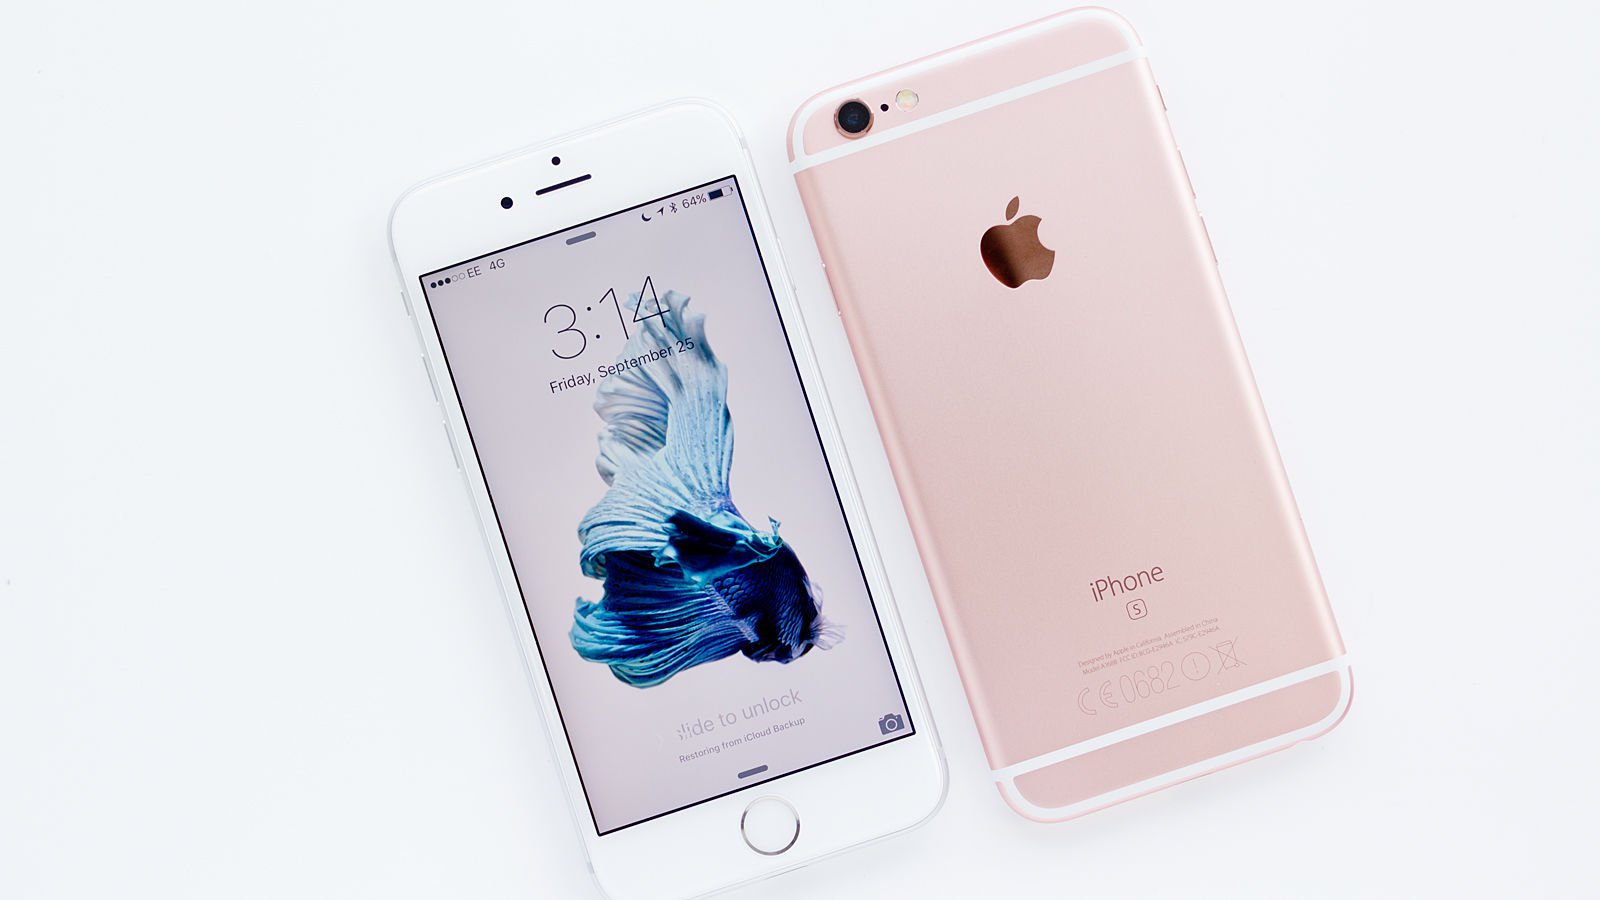 iPhone 6s and 6s Plus Get Price Cuts In India - H3LLOWRLD